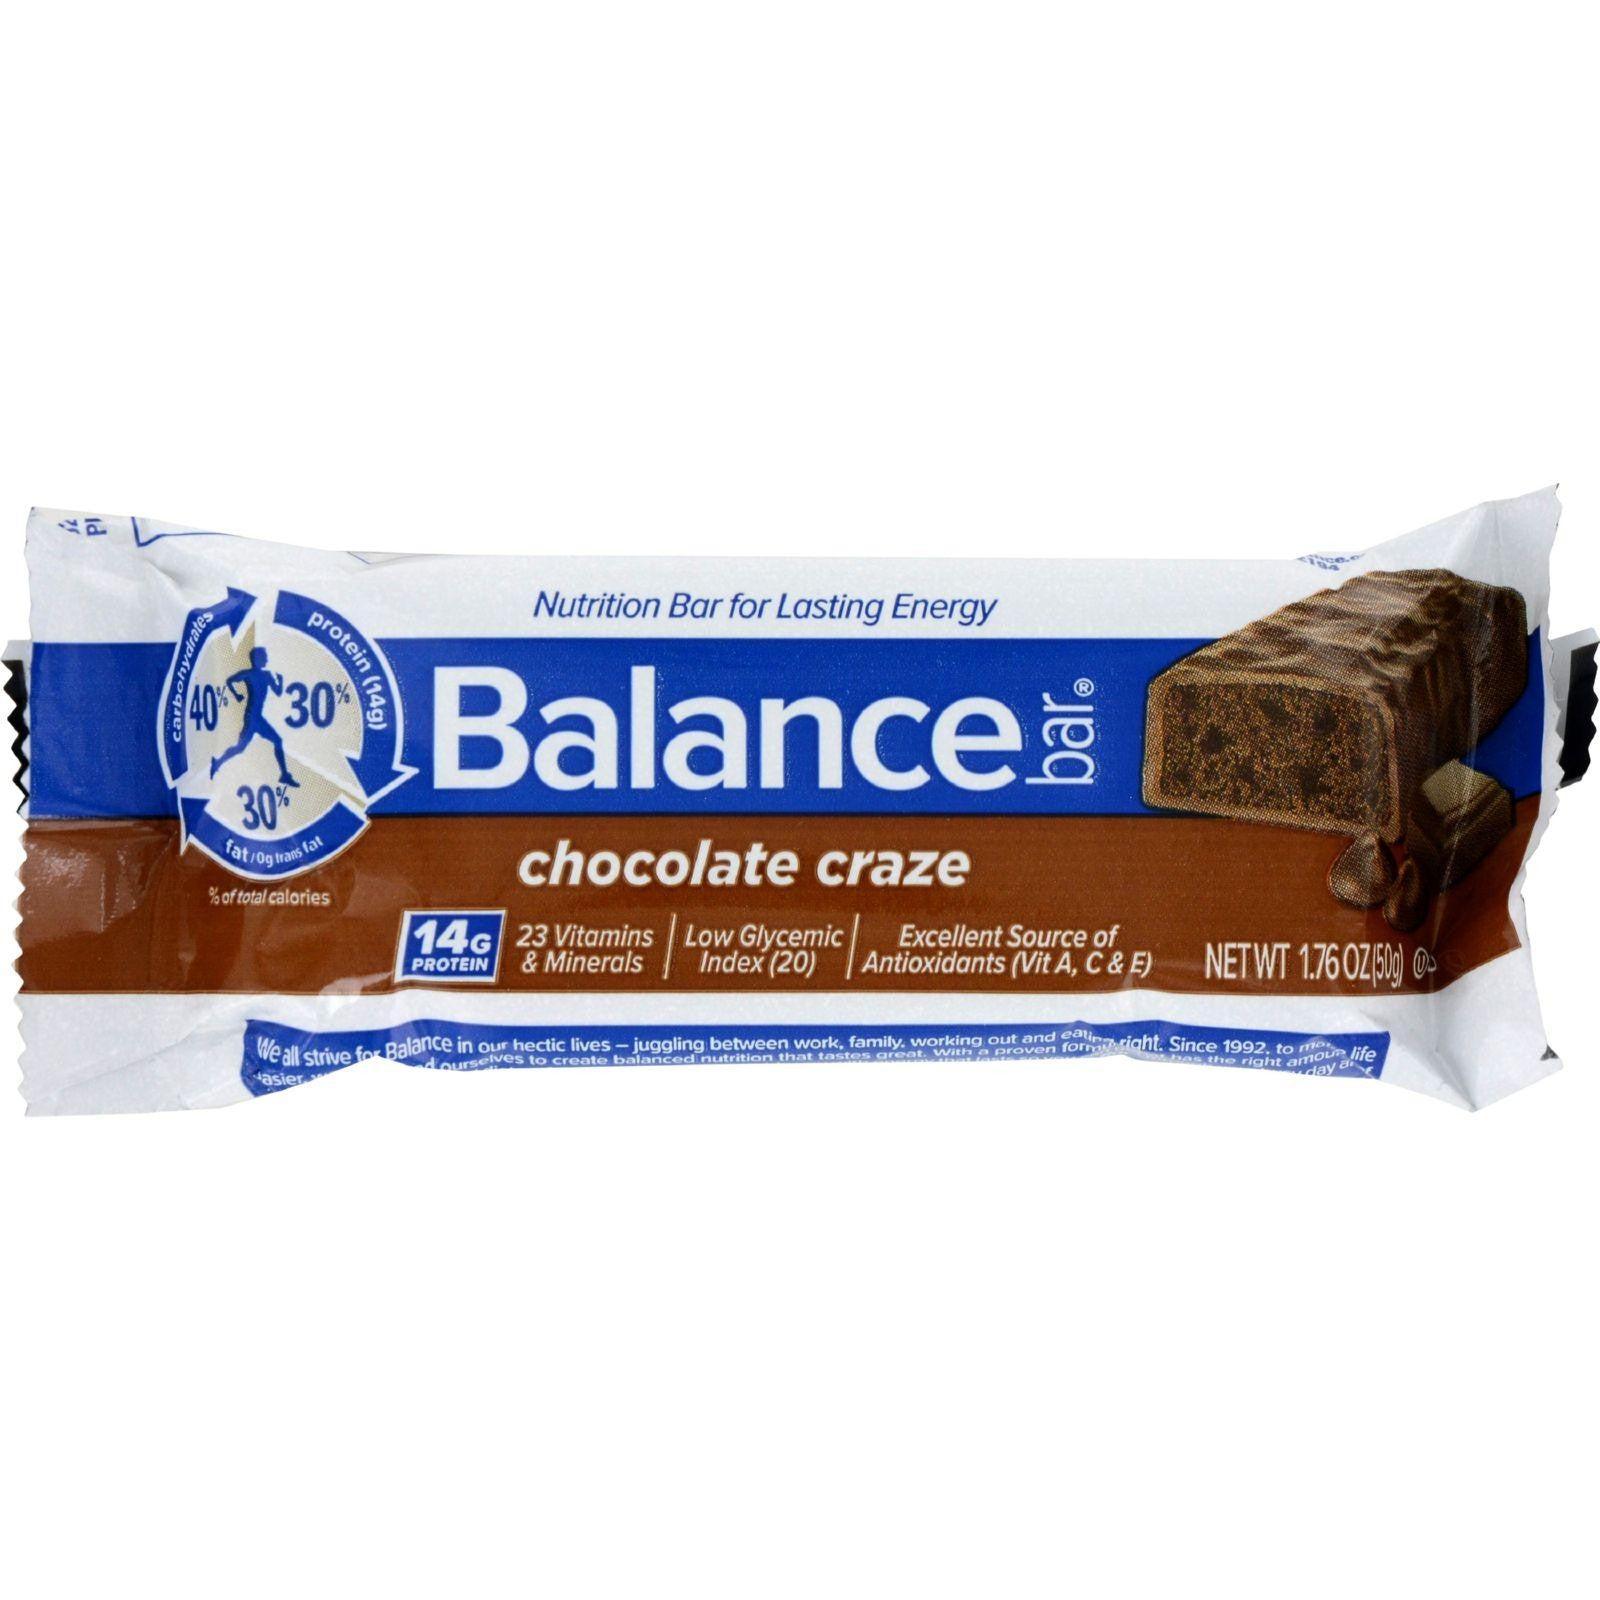 Balance Bar - Chocolate Craze - 1.76 Oz - Case Of 6